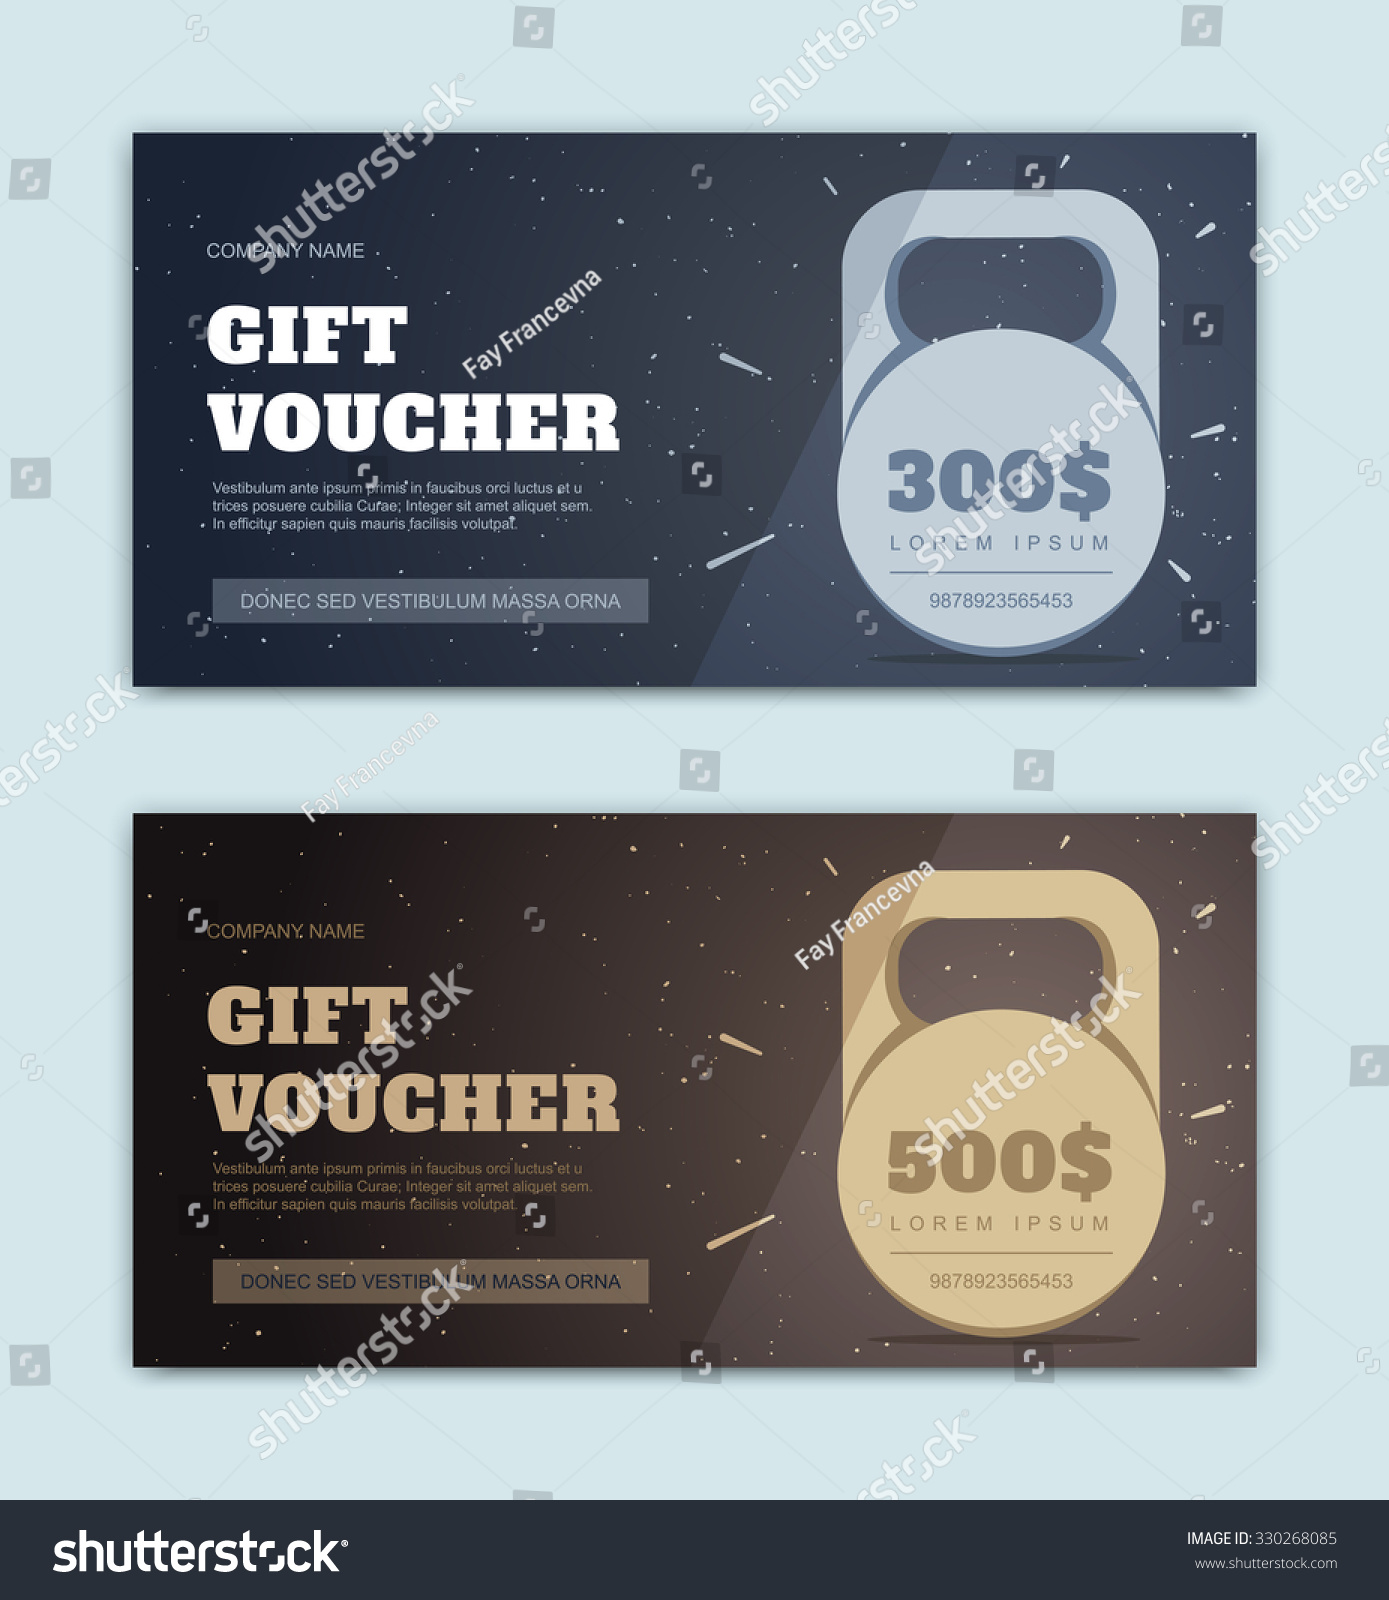 Vector black gift voucher sports fitness stock vector 330268085 vector black gift voucher for sports and fitness premium offer gold certificate yadclub Choice Image